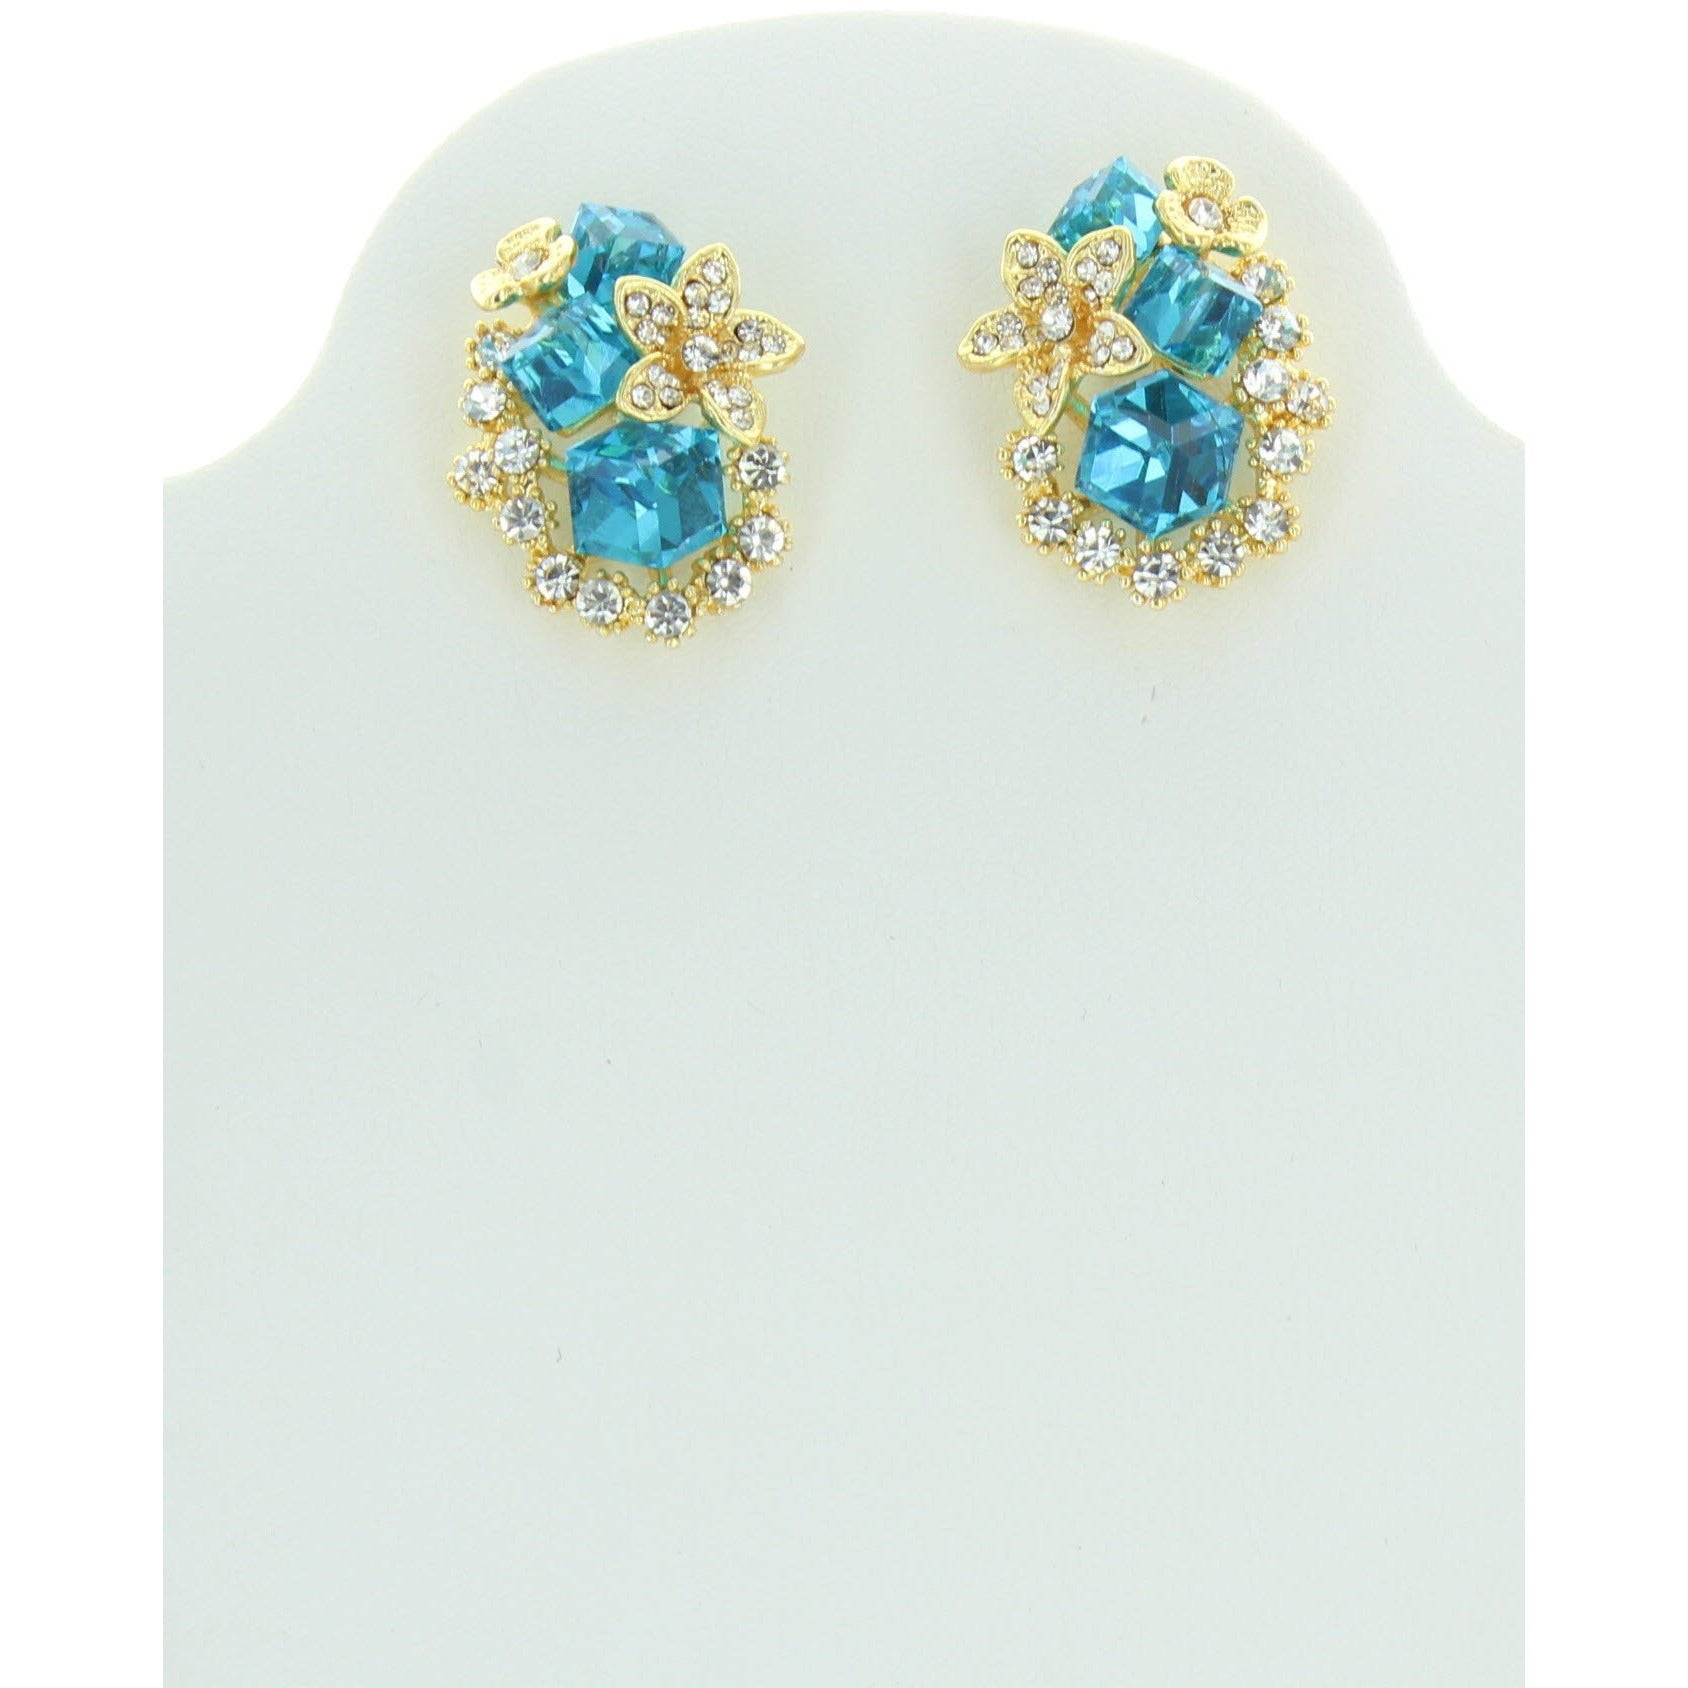 Stunning Fashion Earring